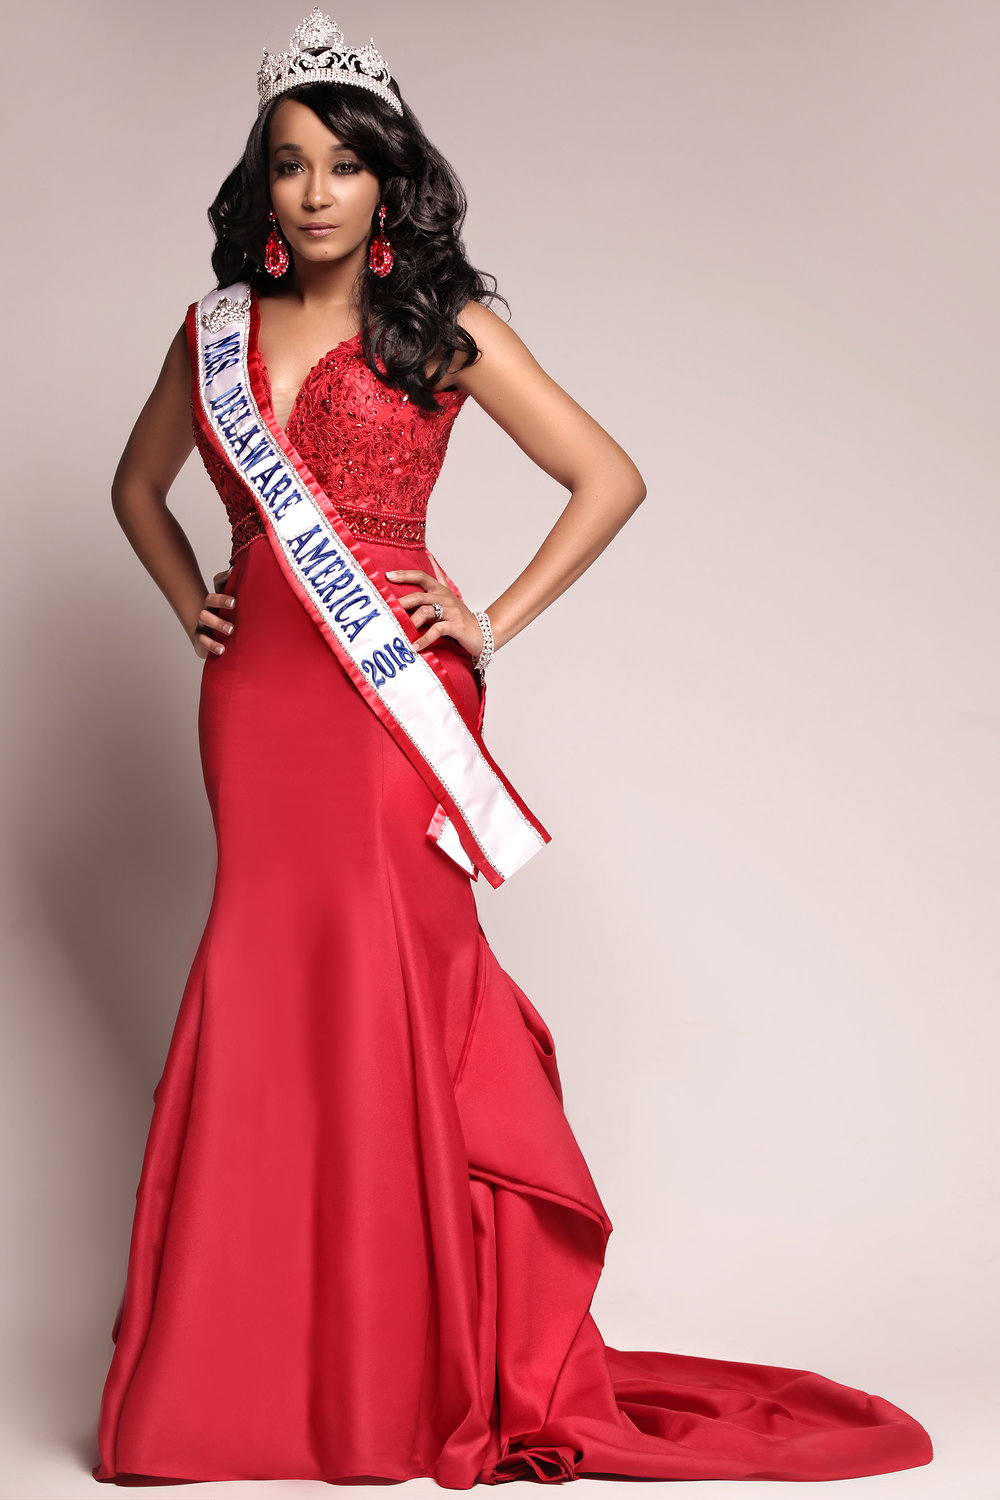 Mrs. Delaware America 2018-Kimberly Phillips